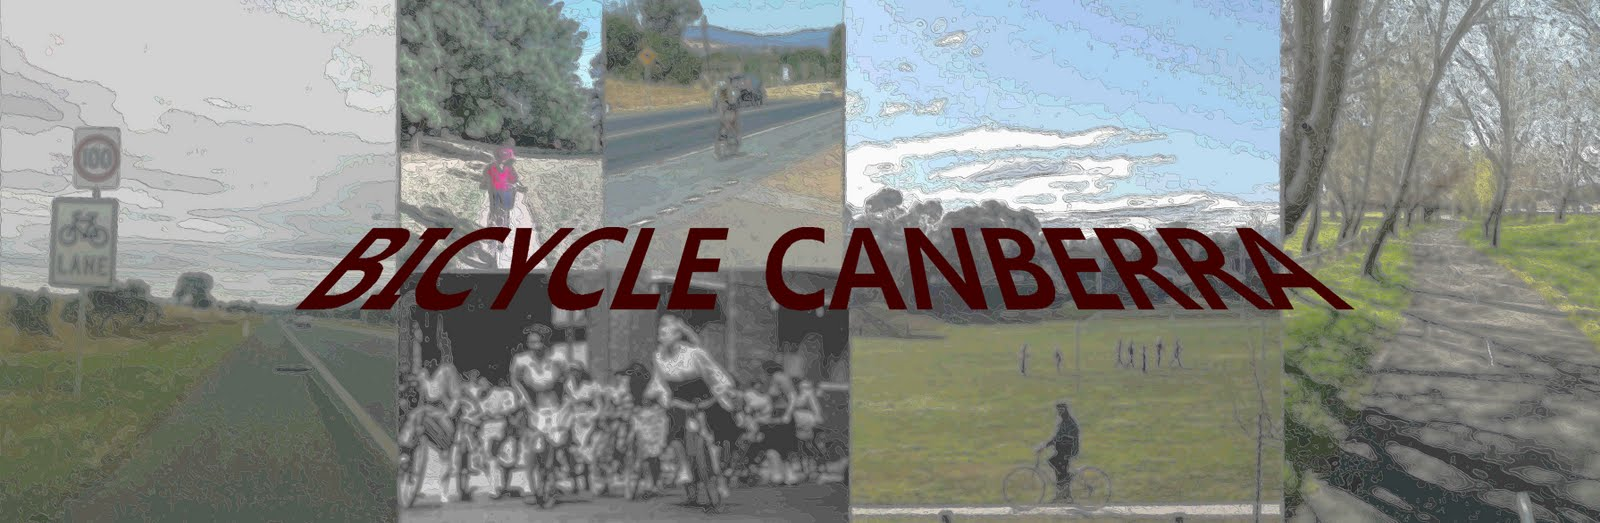 Bicycle Canberra